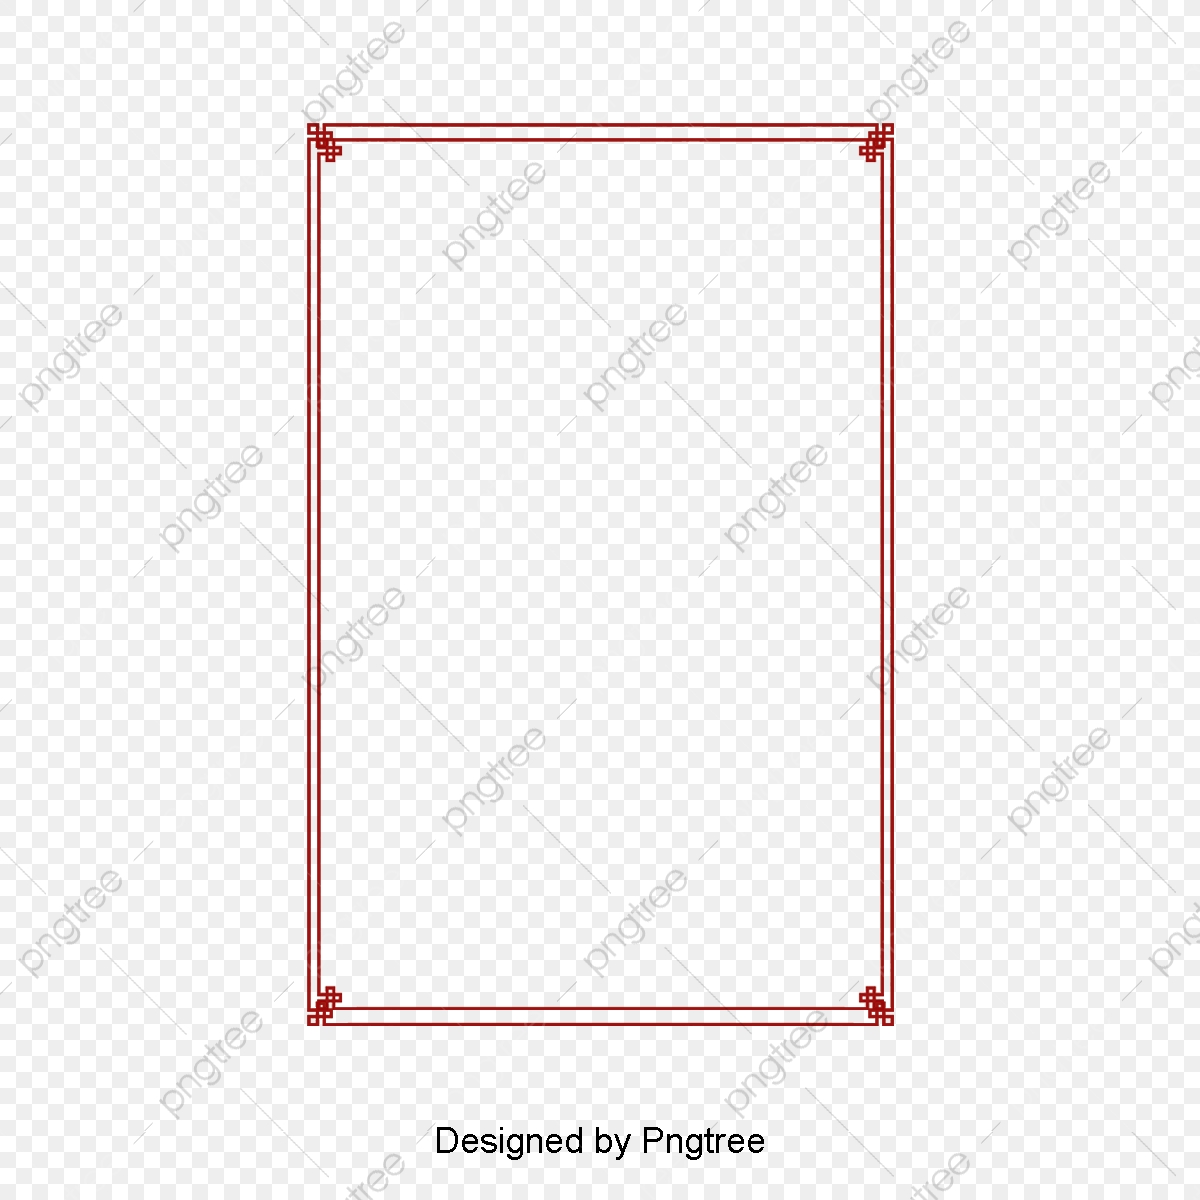 Traditional Borders, Frame, Frames PNG Transparent Clipart Image and.